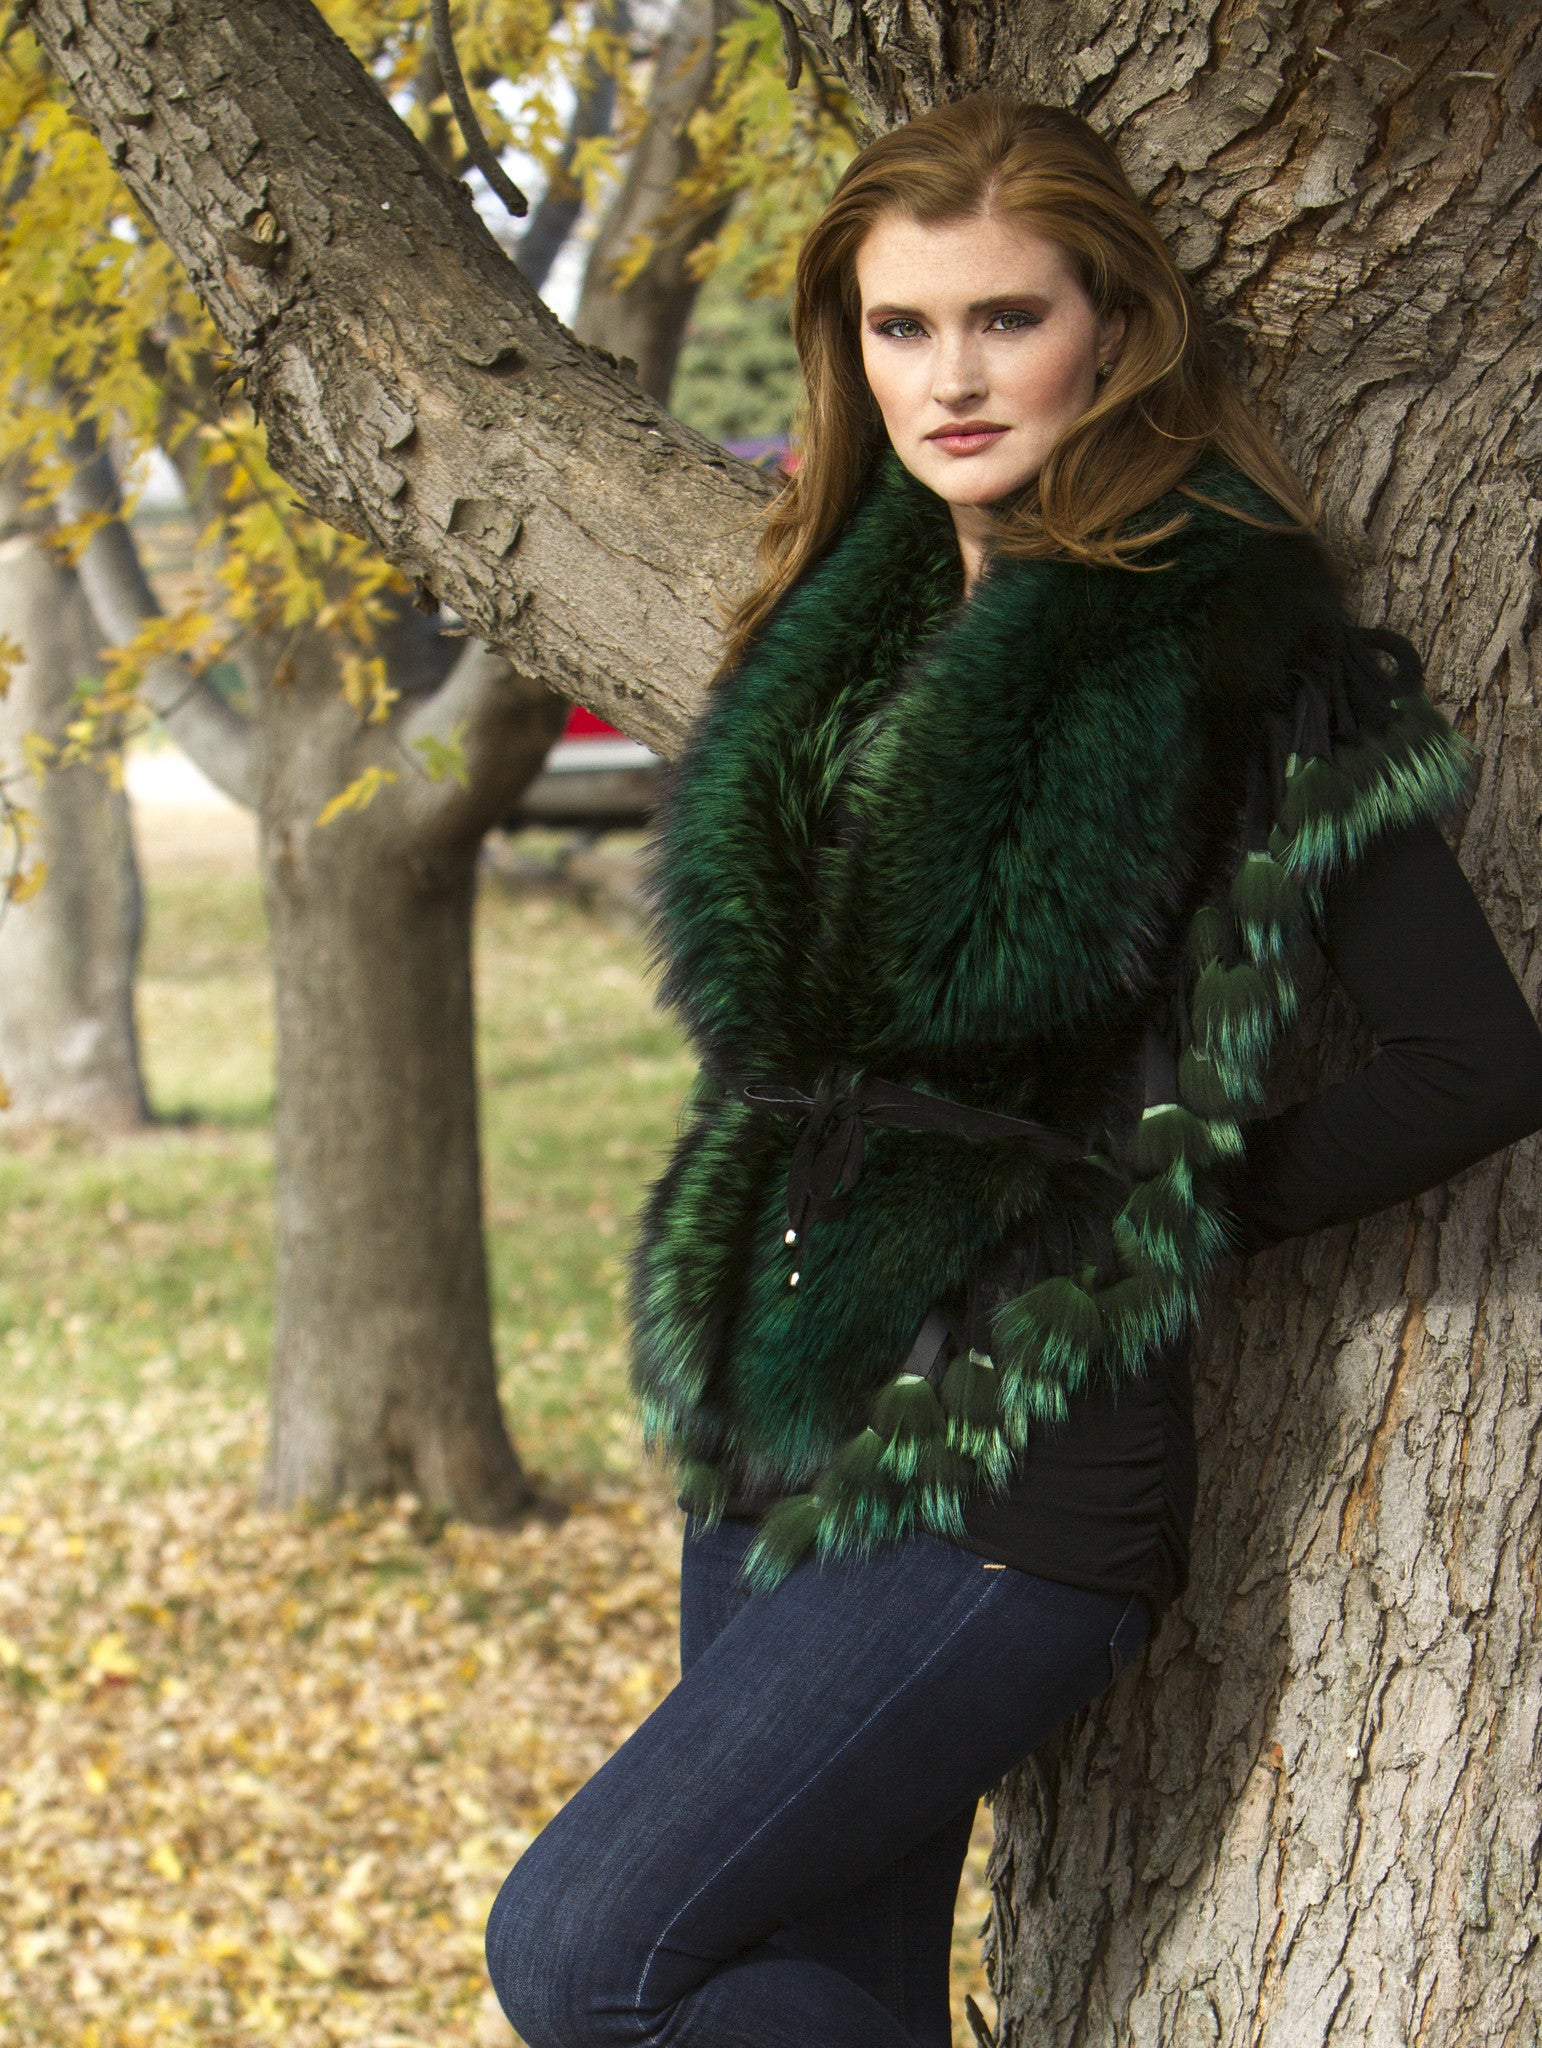 Dyed Emerald Green Silver Fox Fur Collar Accessory